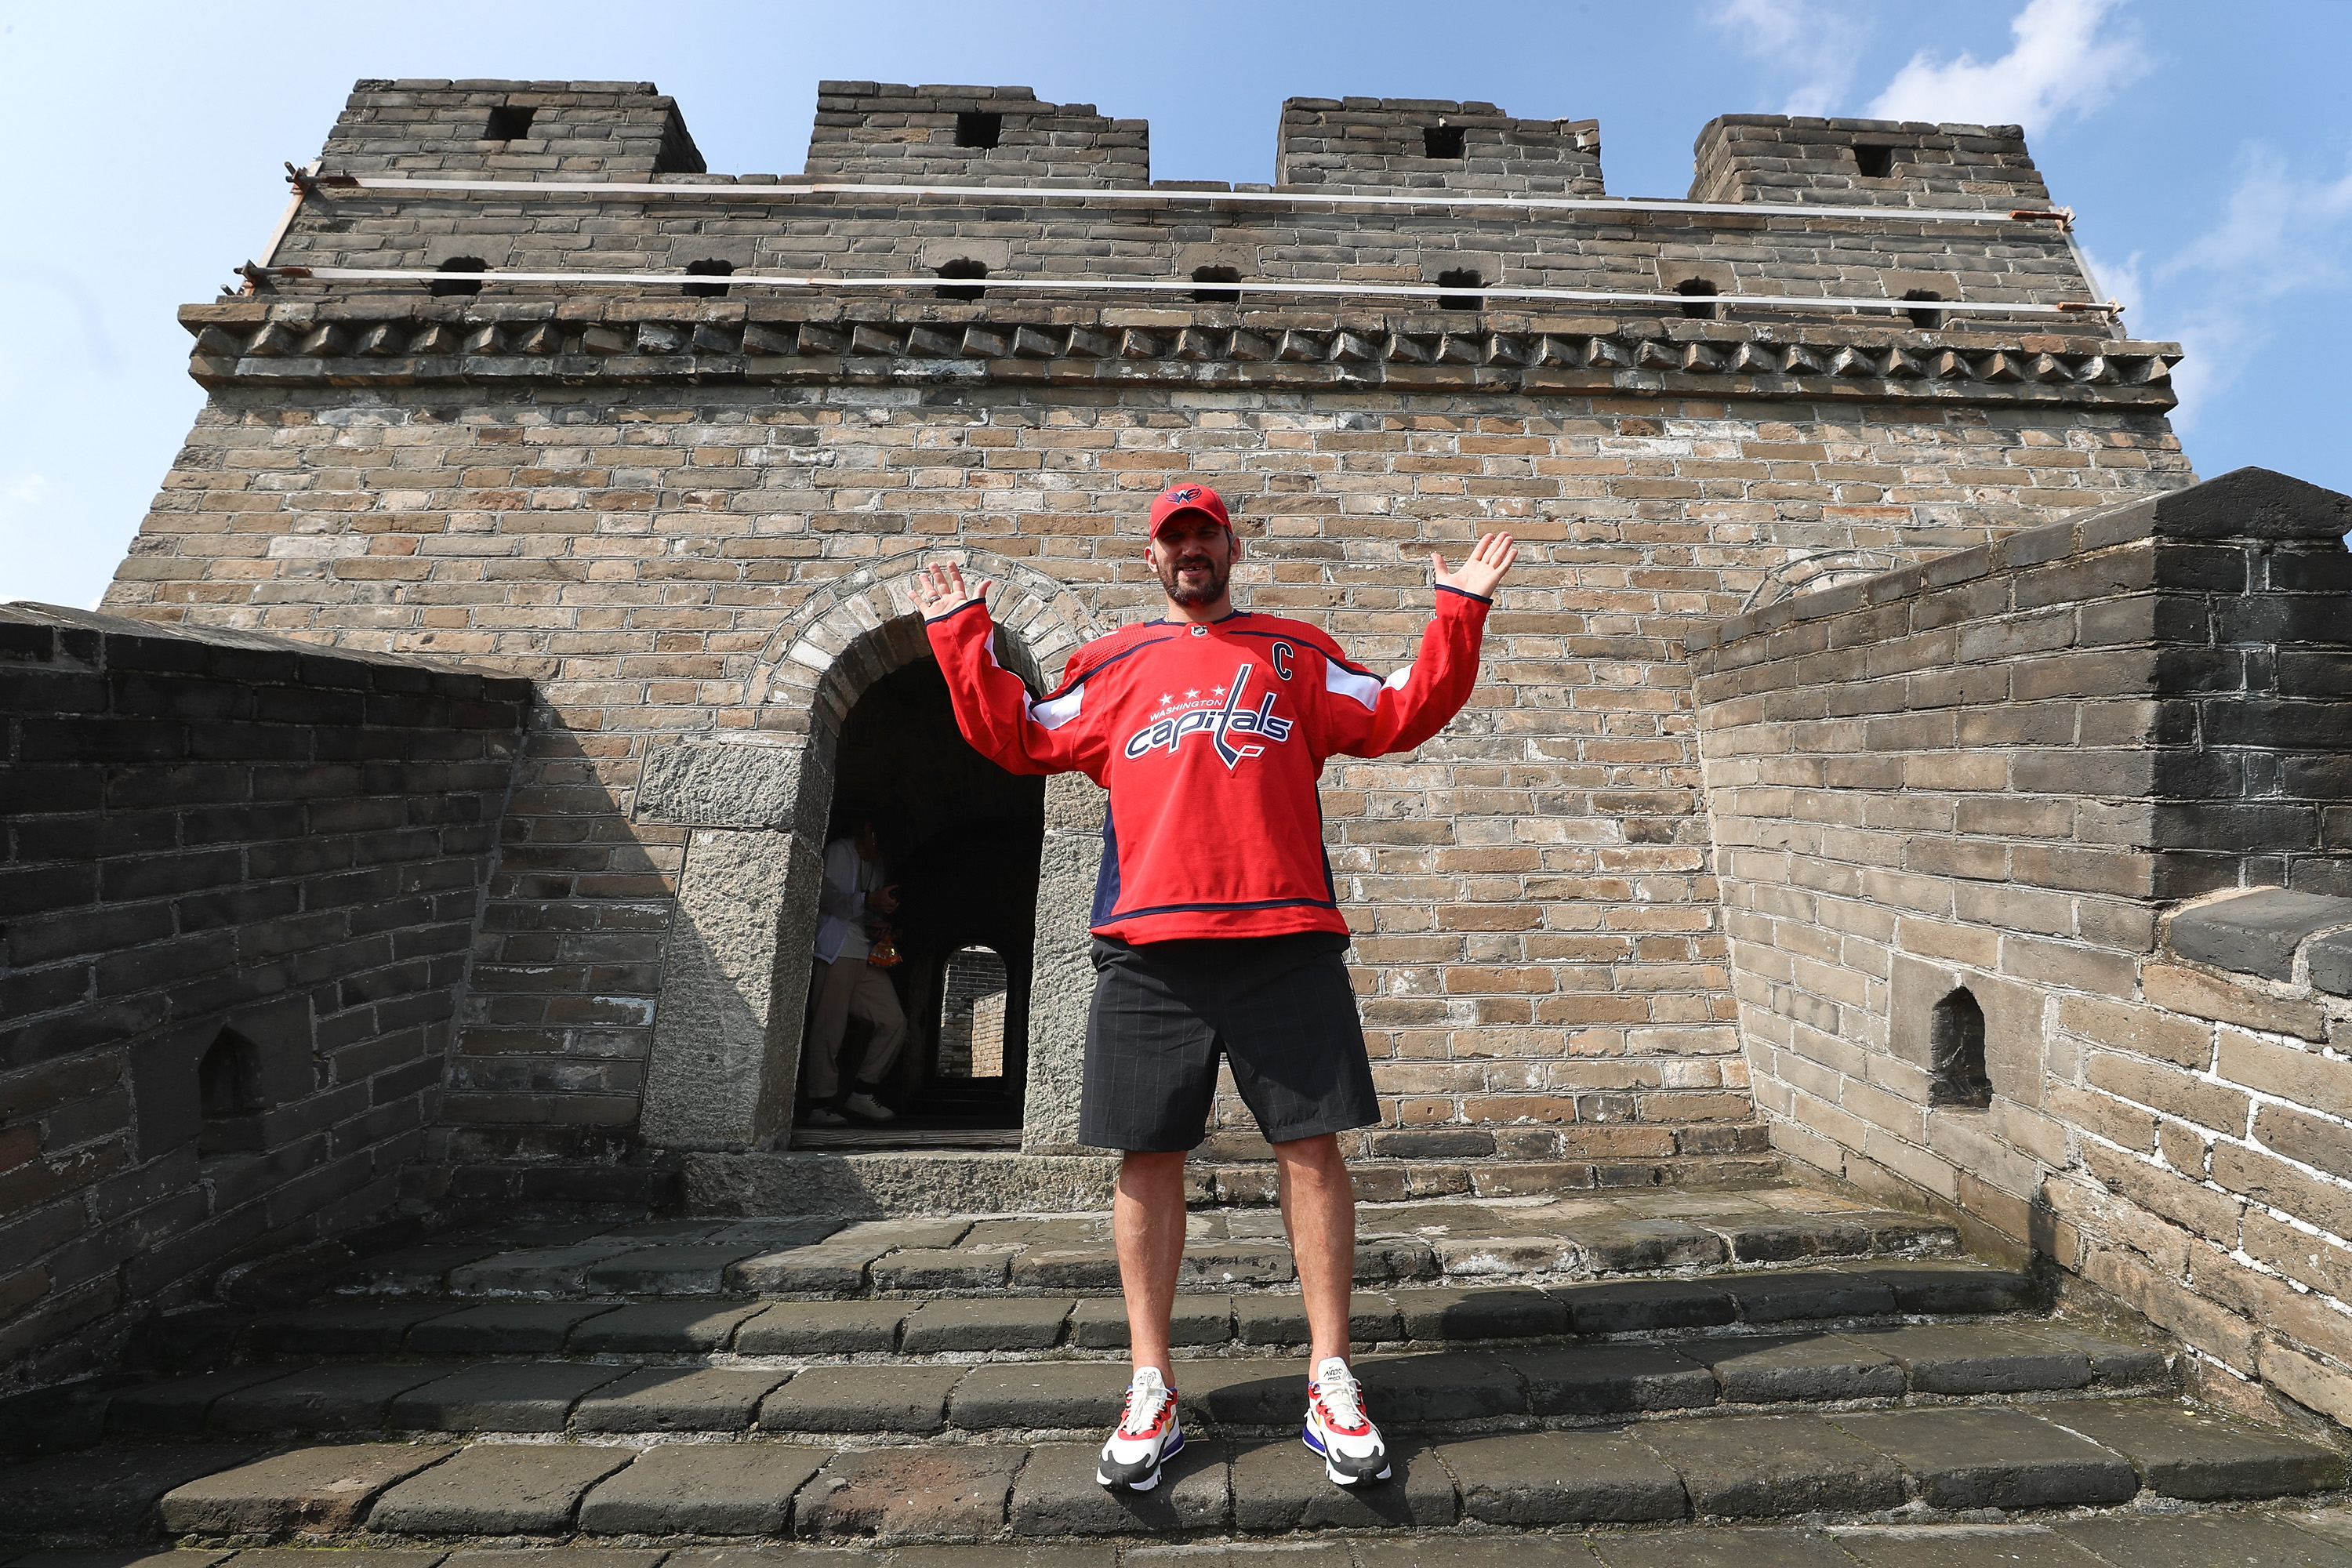 Capitals Captain Alex Ovechkin to Serve as NHL Ambassador in China